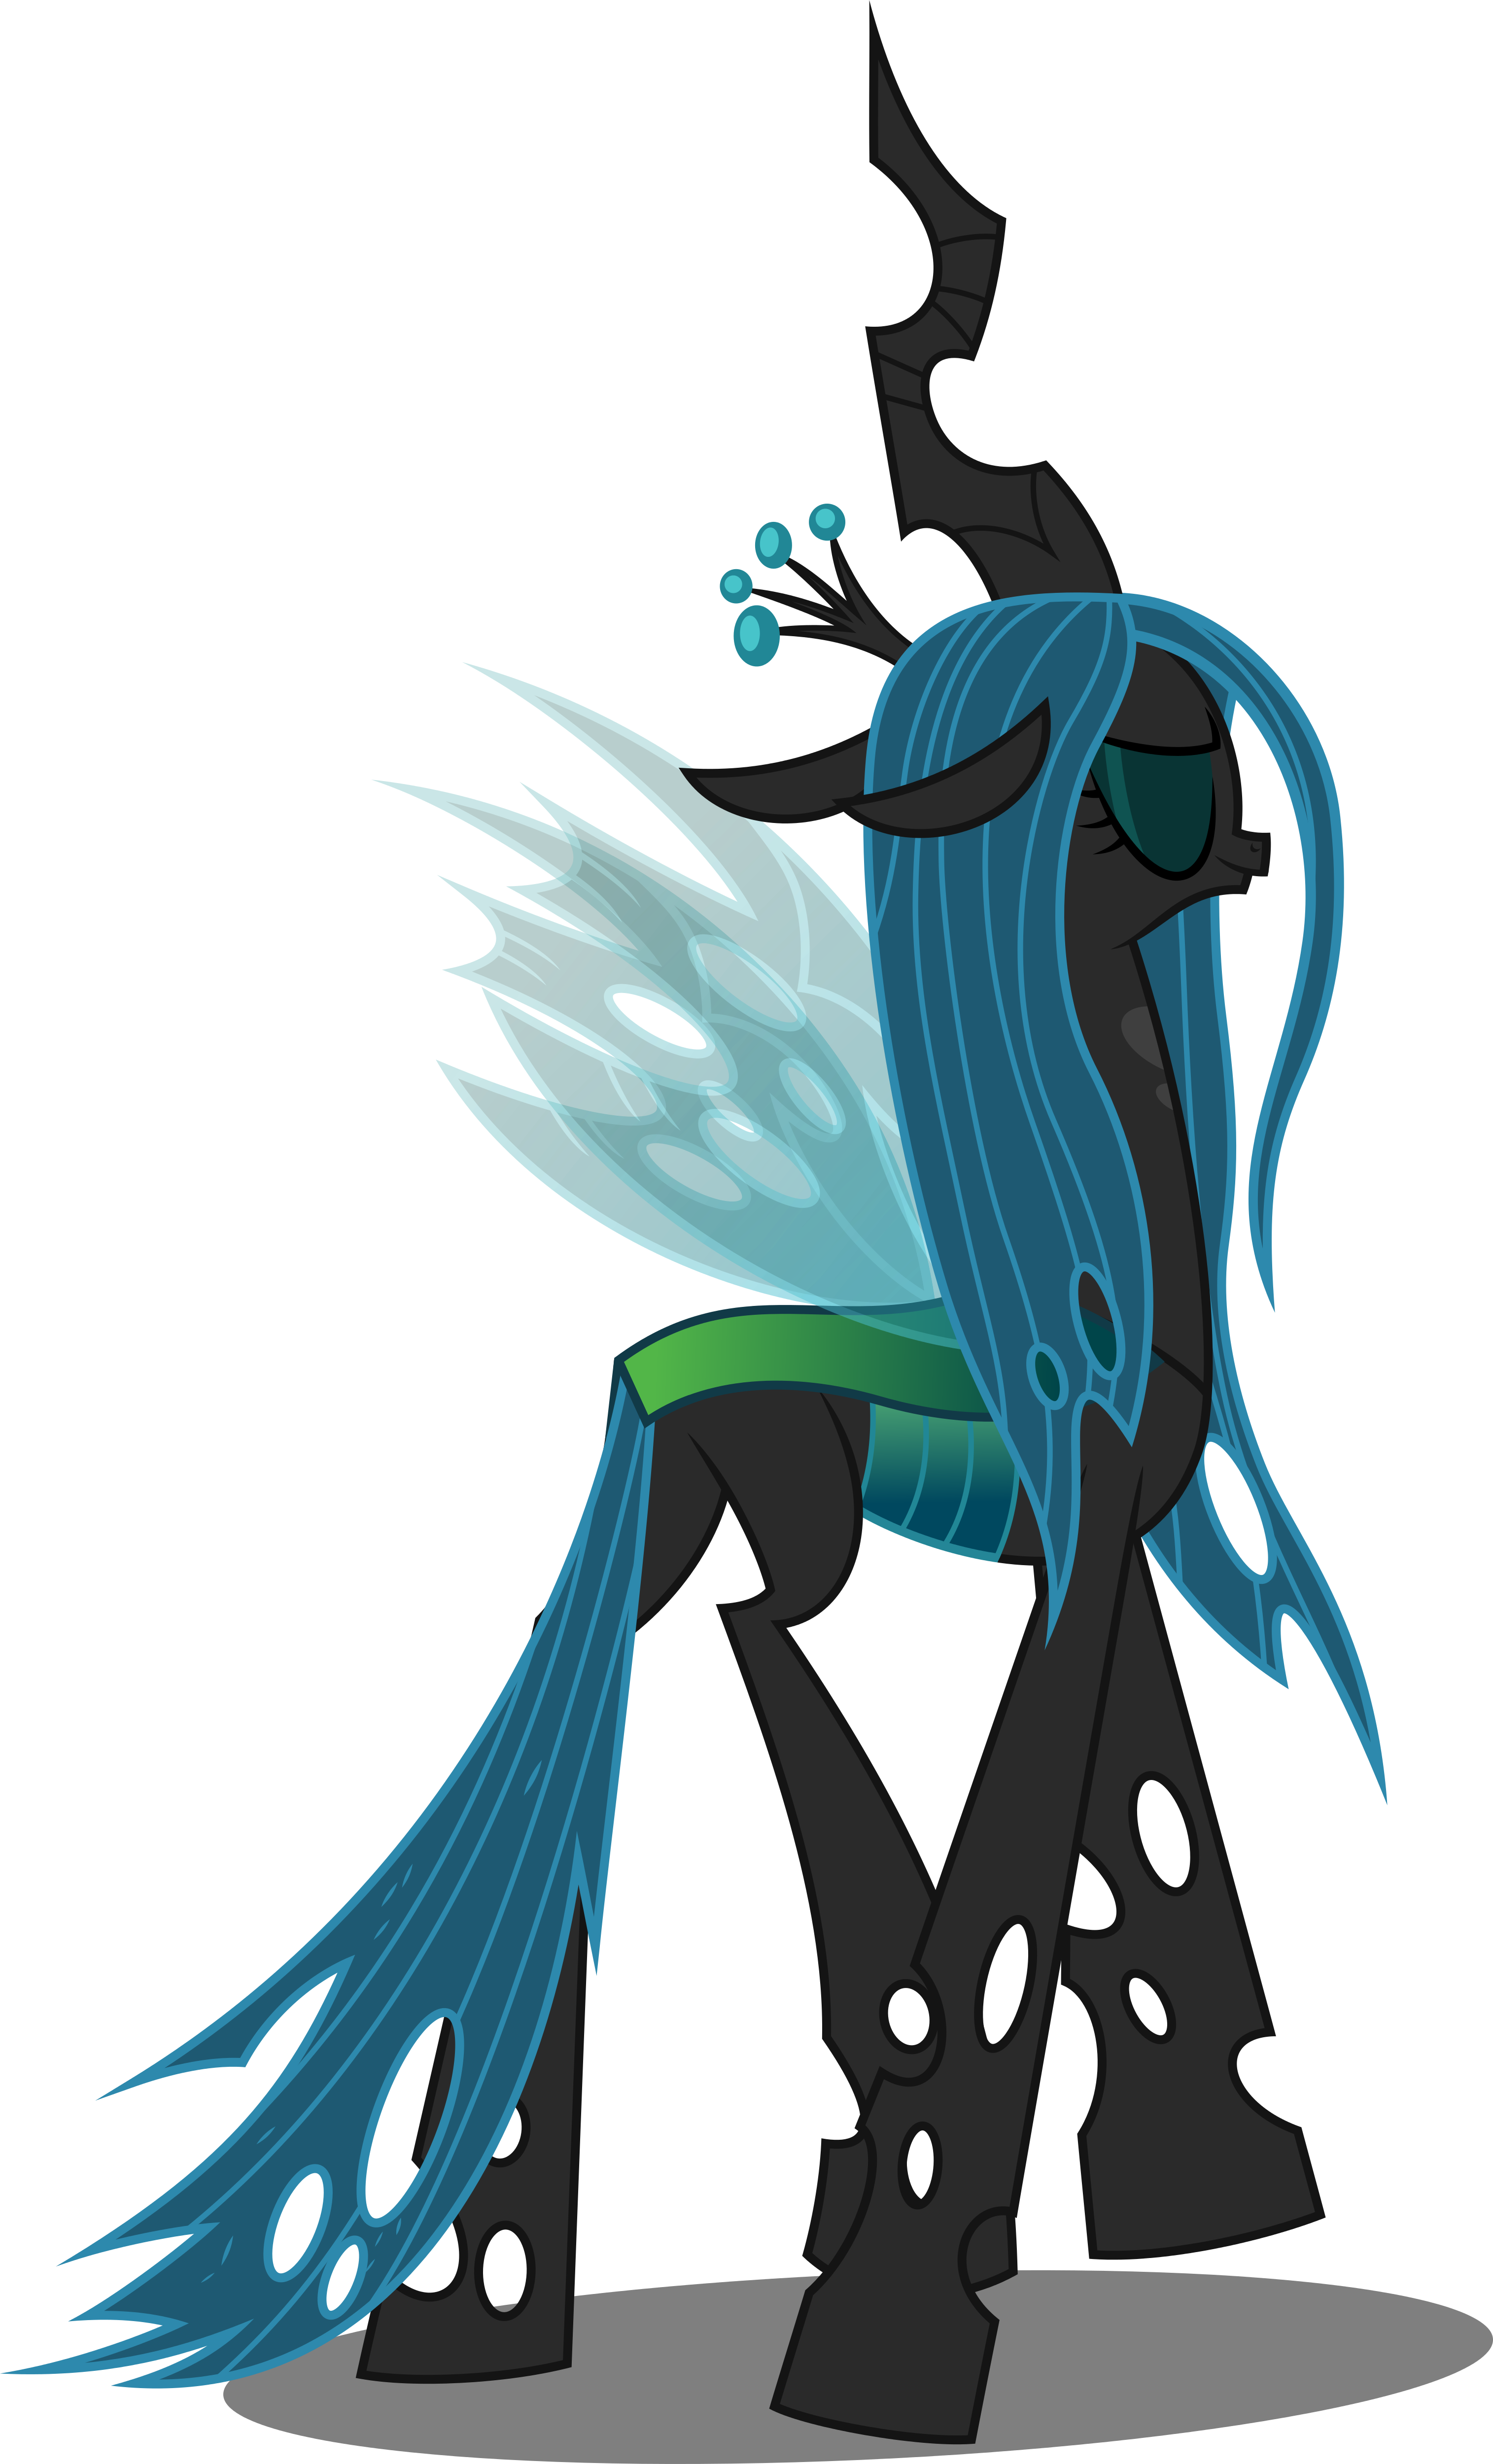 Queen Chrysalis clipart #3, Download drawings